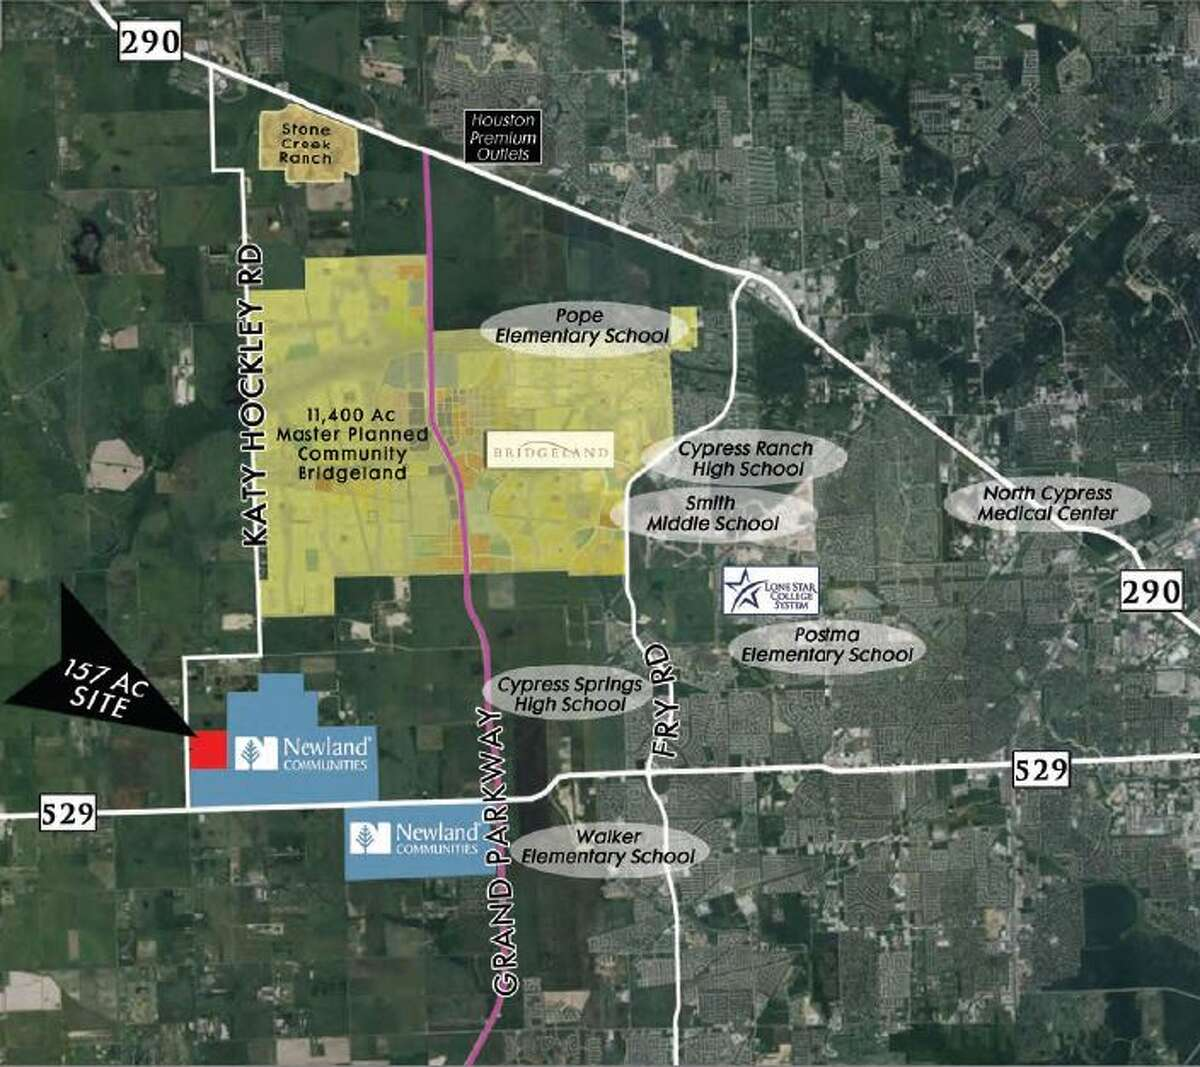 Rockspring Capital, a privately-owned real estate investment firm based in Houston, has acquired a 157-acre site off of Katy Hockley road, just north of FM 529 in the Katy area. The firm is expected to develop homes there; the land is within Katy Independent School District boundaries. Jim McAlister IV, president and CEO of Rockspring Capital, said in an announcement.